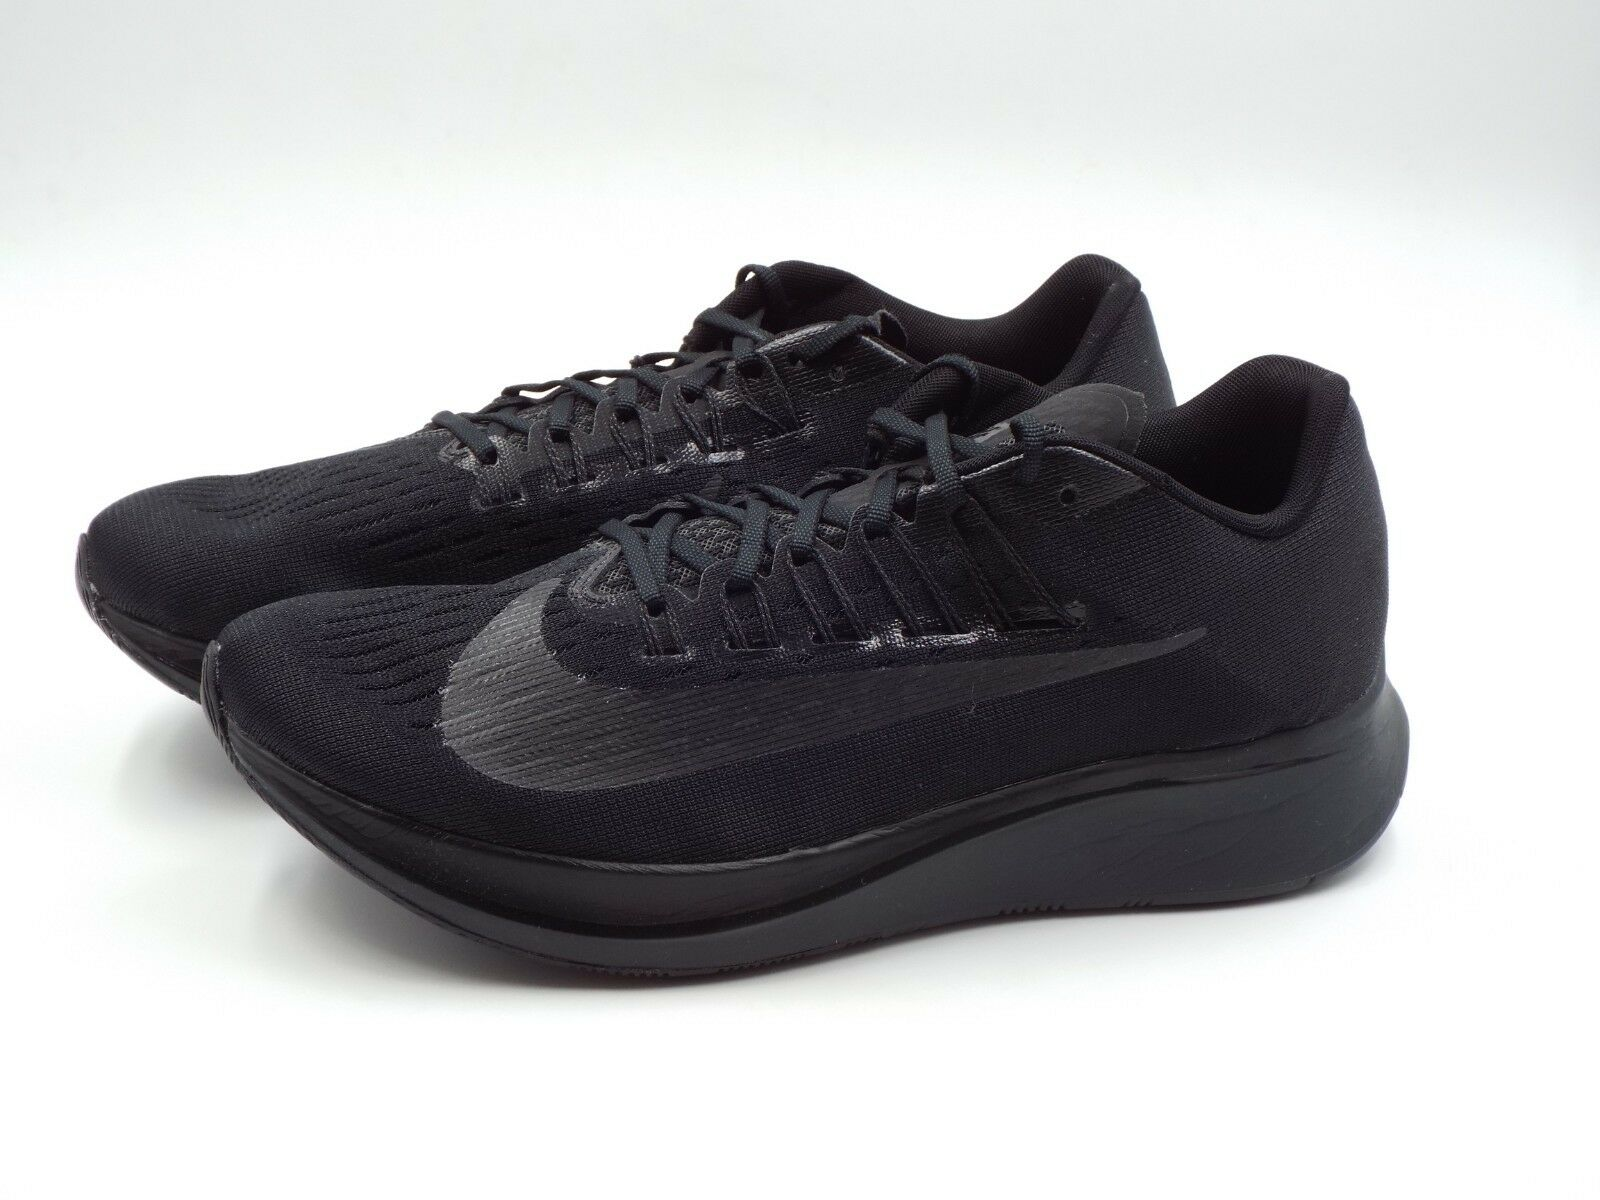 Men's Nike Zoom Fly Size 11.5 (880848 003) Black Black Black Black Anthracite a86a2d